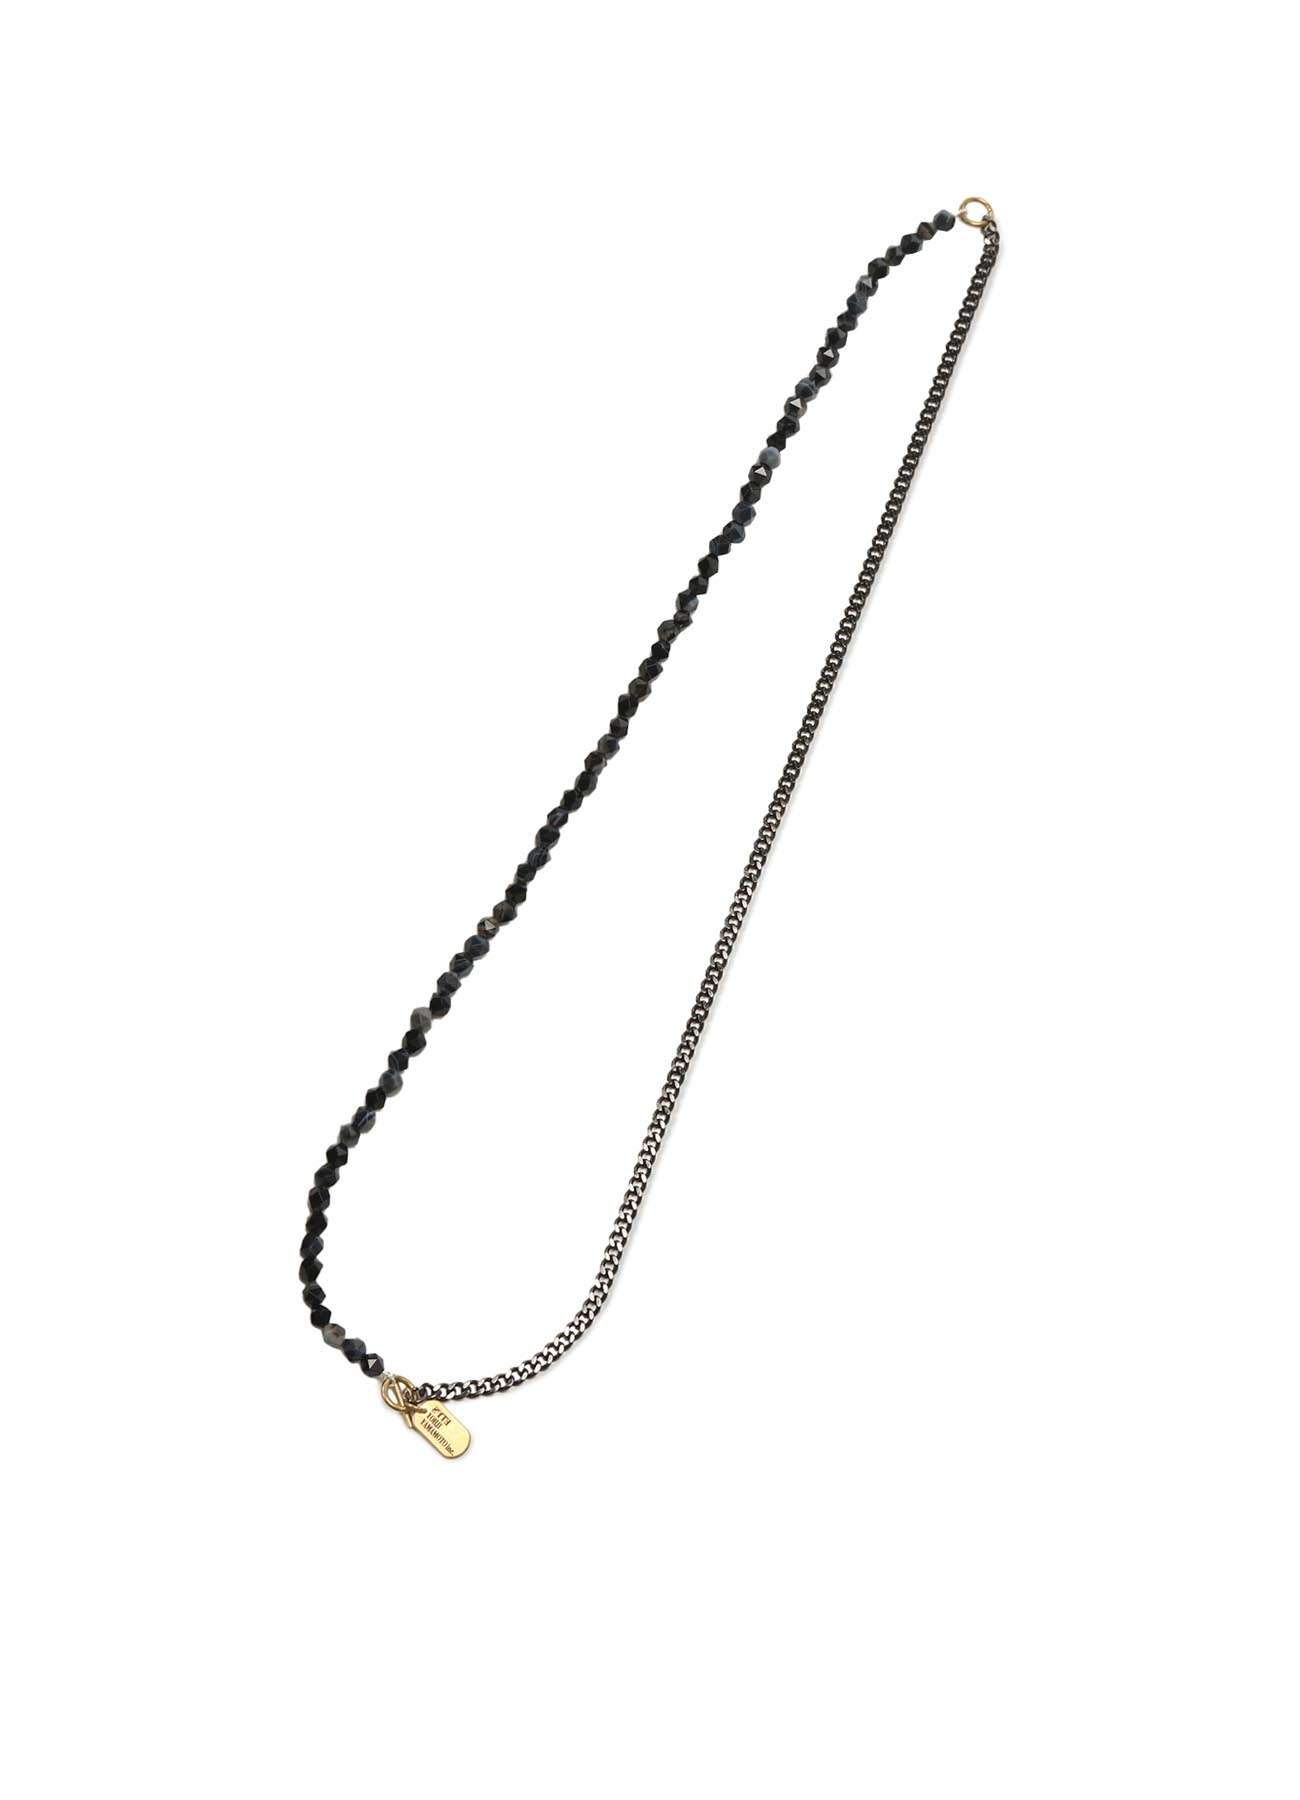 Onyx Brass Chain Necklace Bracelet